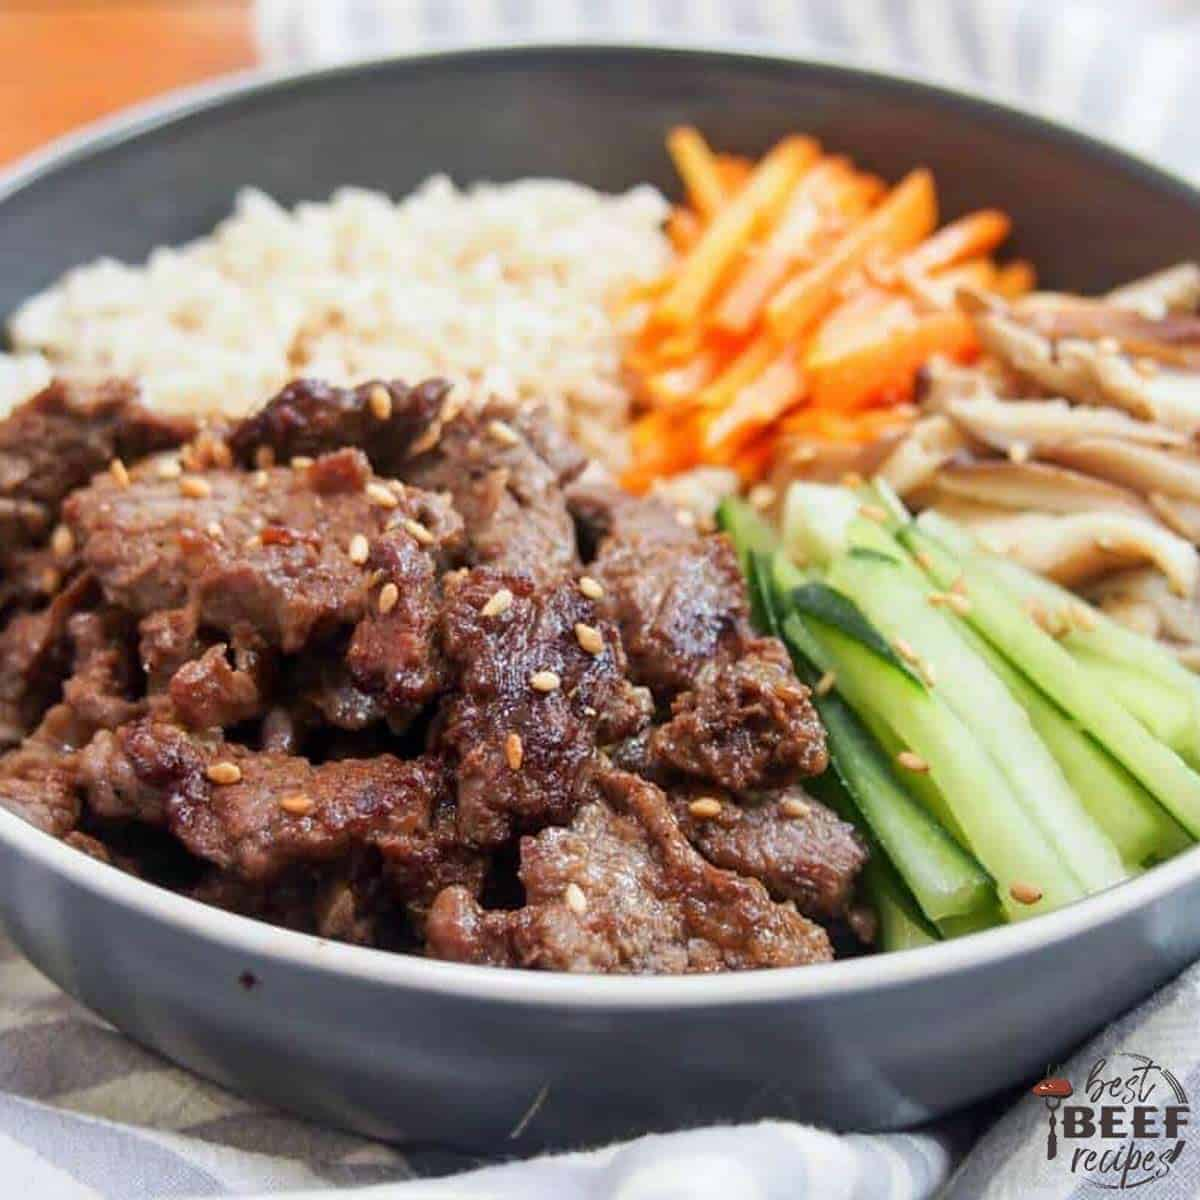 A close up of the Korean beef bowl with sesame seeds, vegetables, and rice, in a black bowl